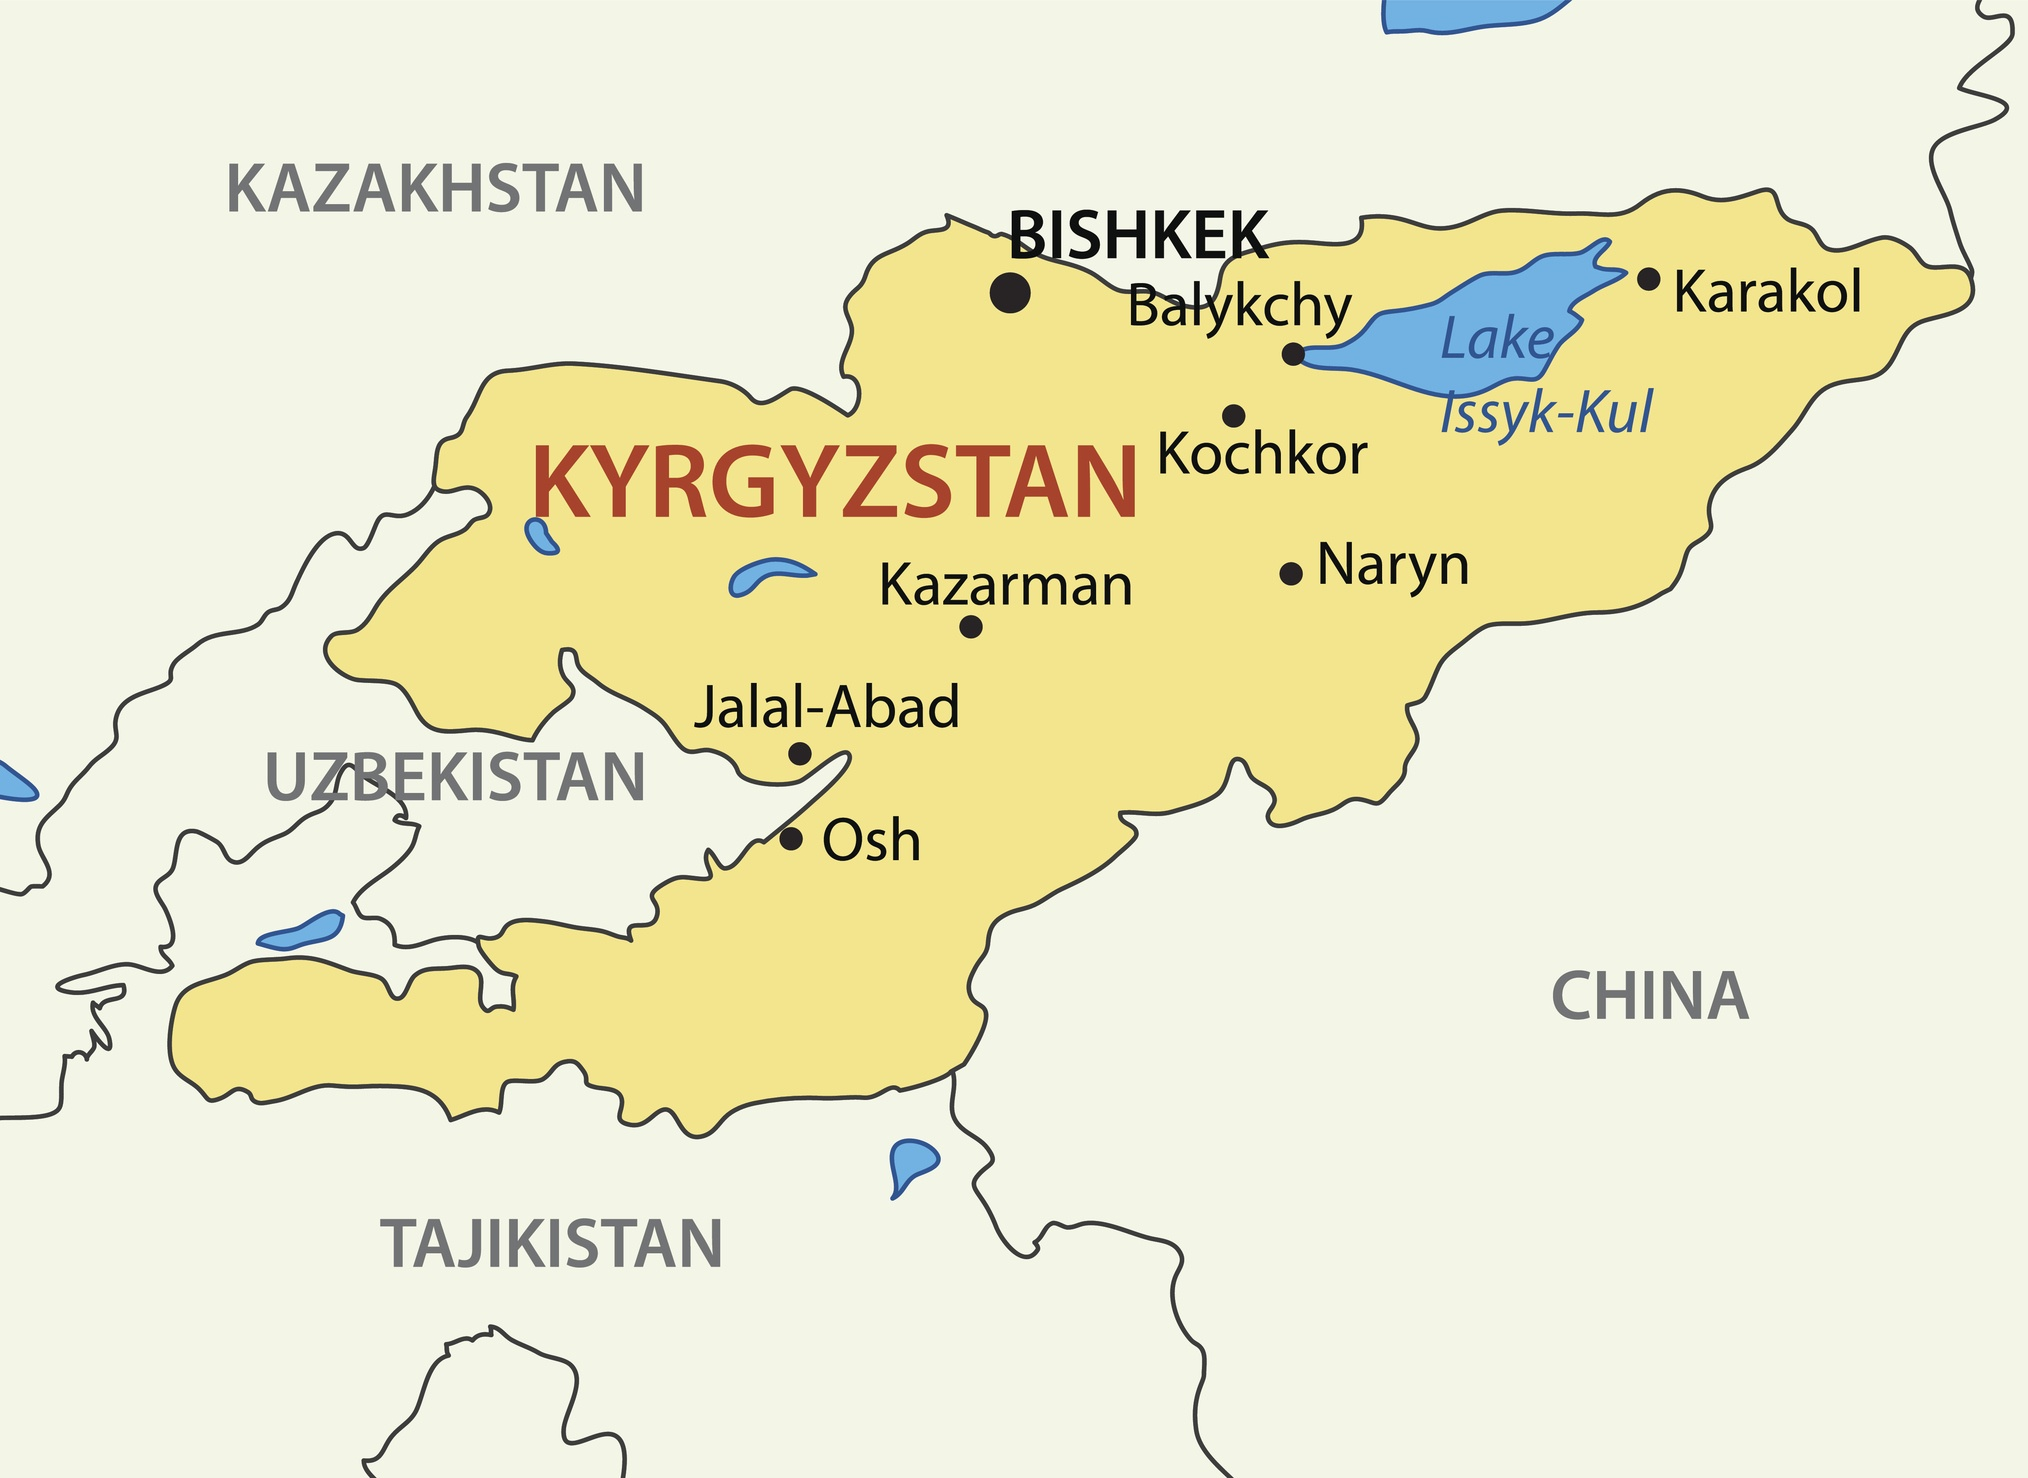 Kyrgyz Republic - Kyrgyzstan - vector map